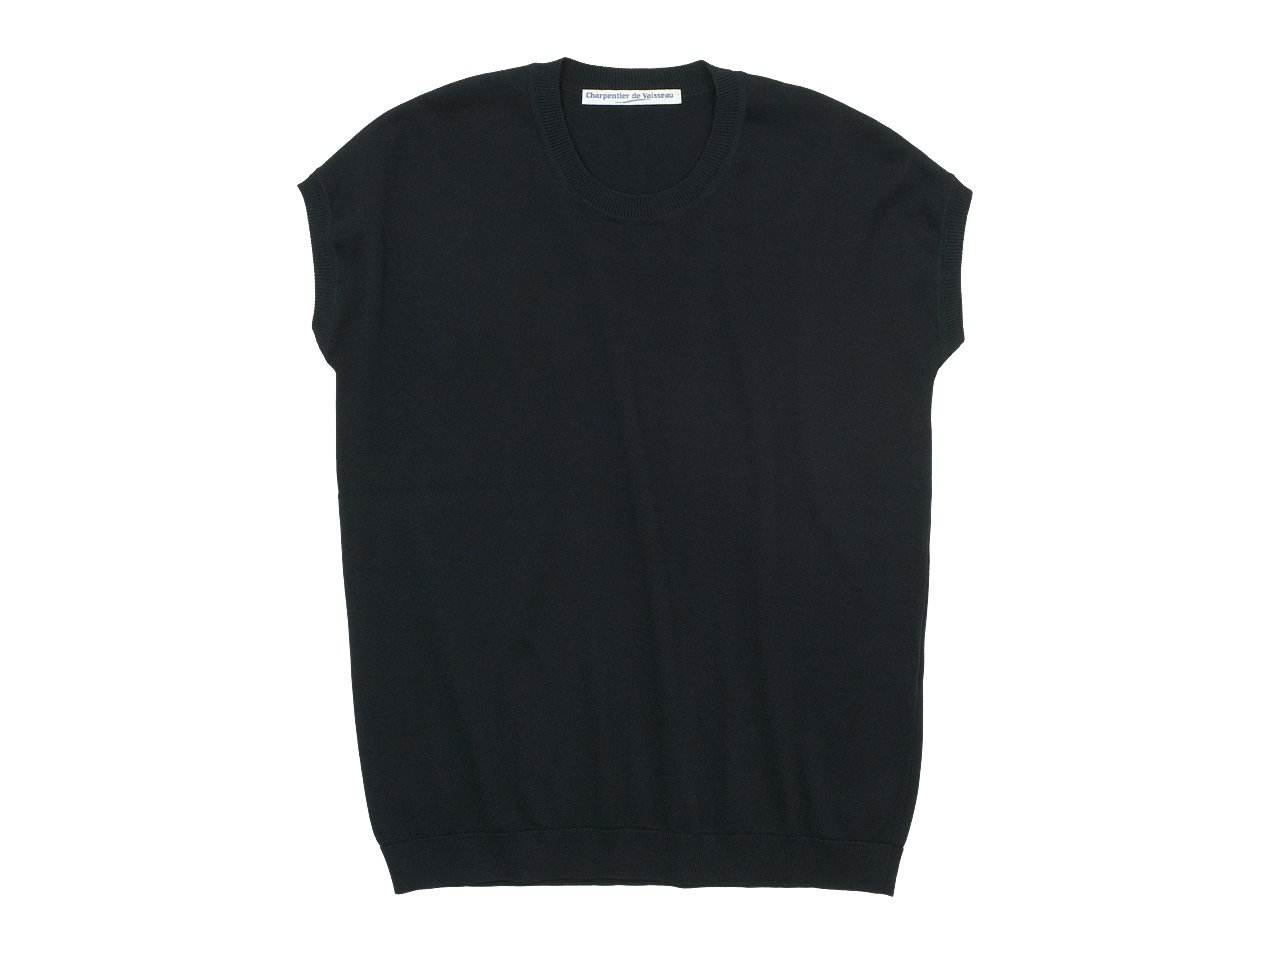 Charpentier de Vaisseau Klera Cotton Knit French Sleeve BLACK